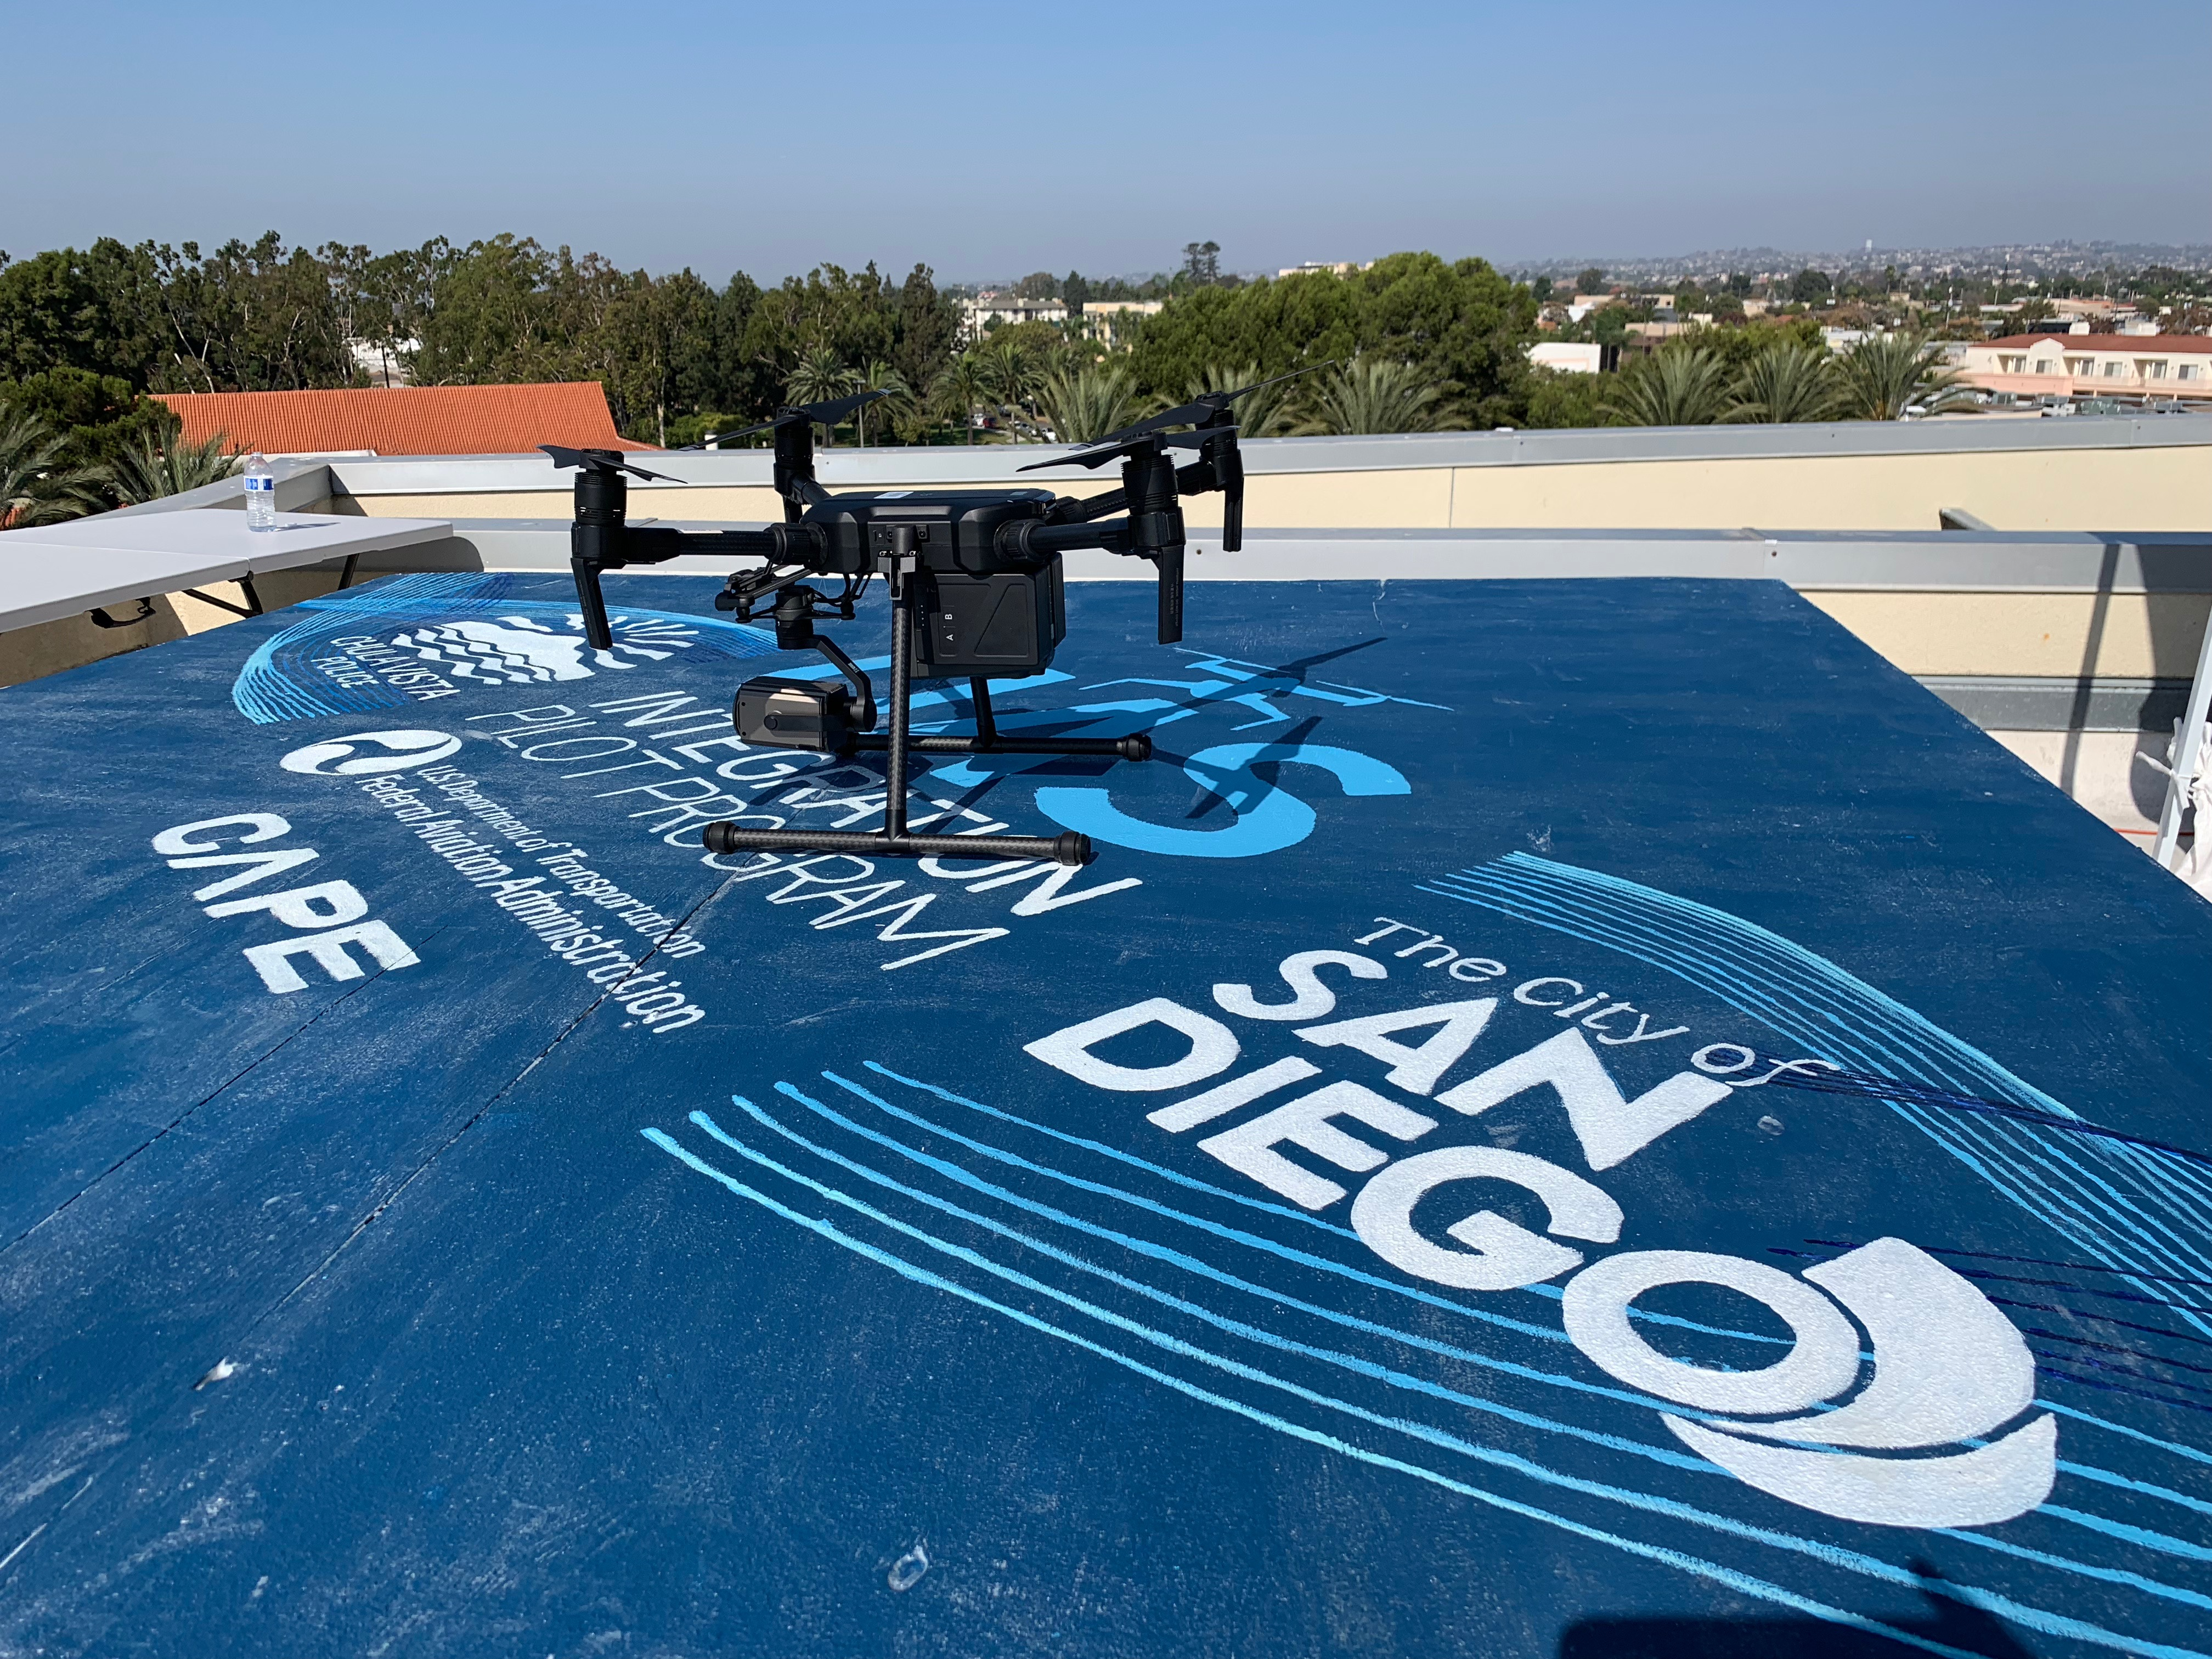 Cape Launches Police Telepresence Drone in Chula Vista, California